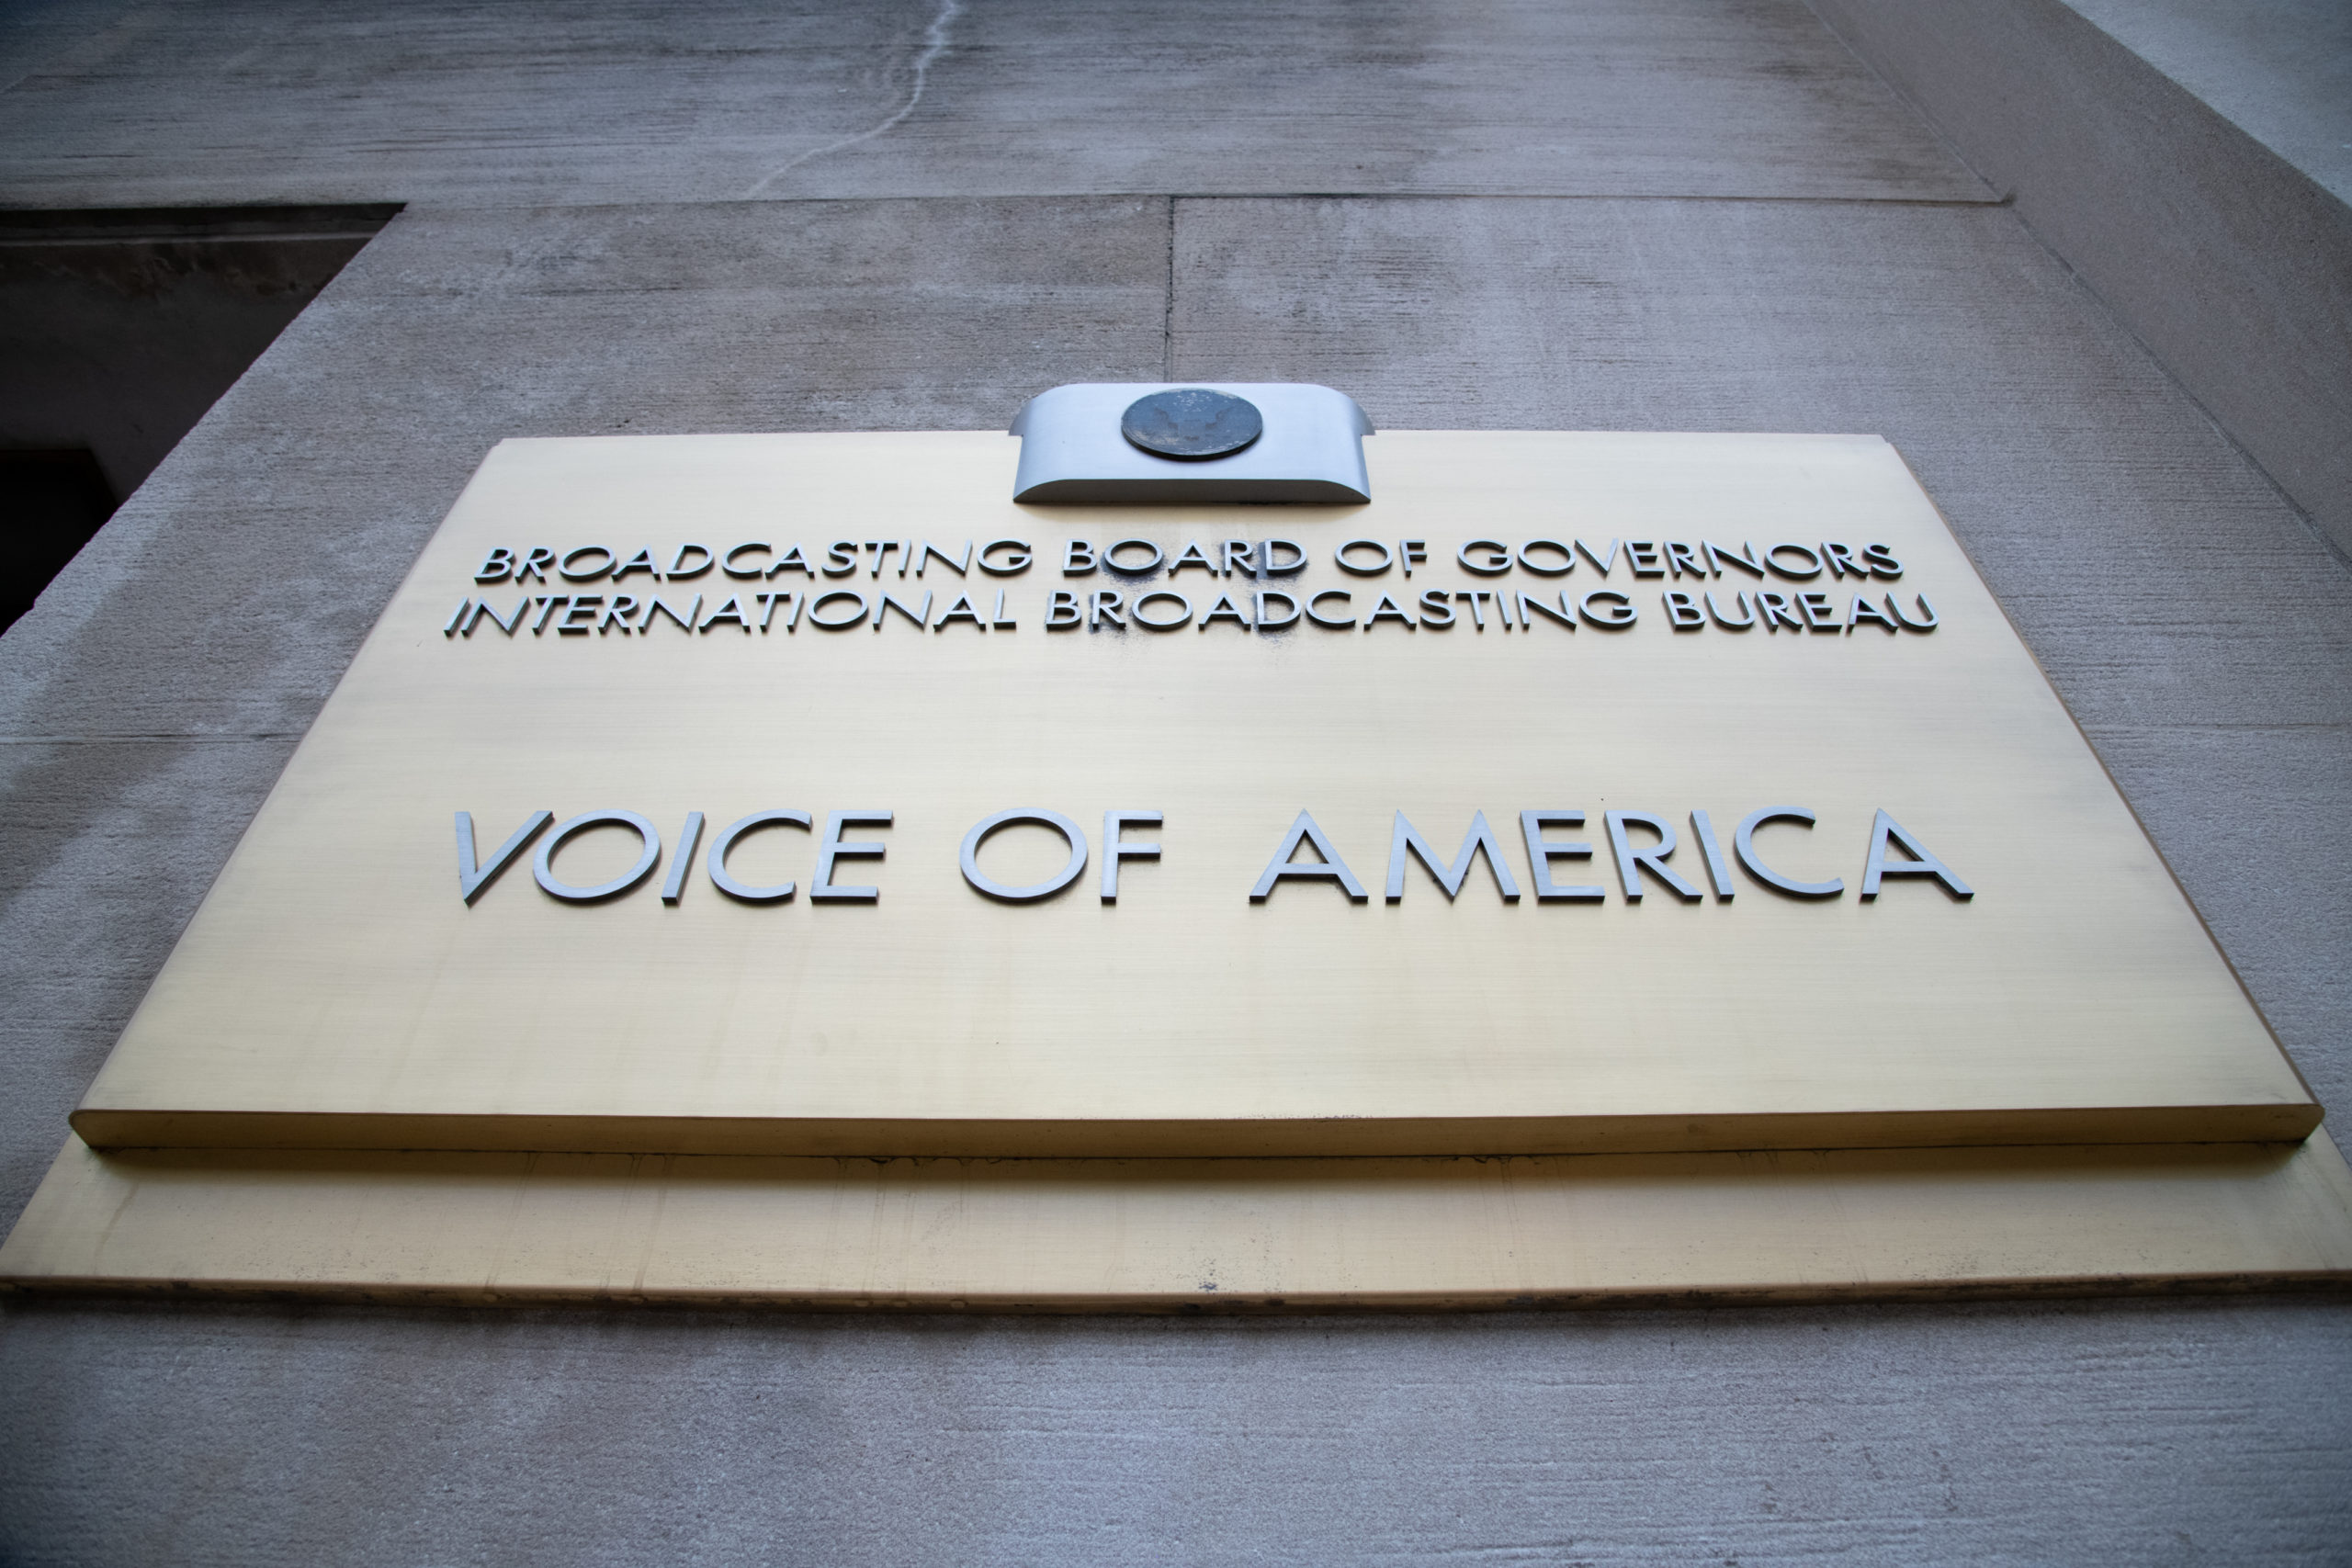 A general view of the Voice of America (VOA) sign on its headquarters in Washington, D.C., on July 31, 2020 amid the Coronavirus pandemic. This week the United States surpassed 150,000 confirmed deaths from COVID-19, although the actual count is thought to be significantly higher, as negotiations within the Republican Party and Senate sputtered ahead of crucial deadlines for unemployment insurance, eviction and the greater stimulus package. (Graeme Sloan/Sipa USA)No Use UK. No Use Germany.